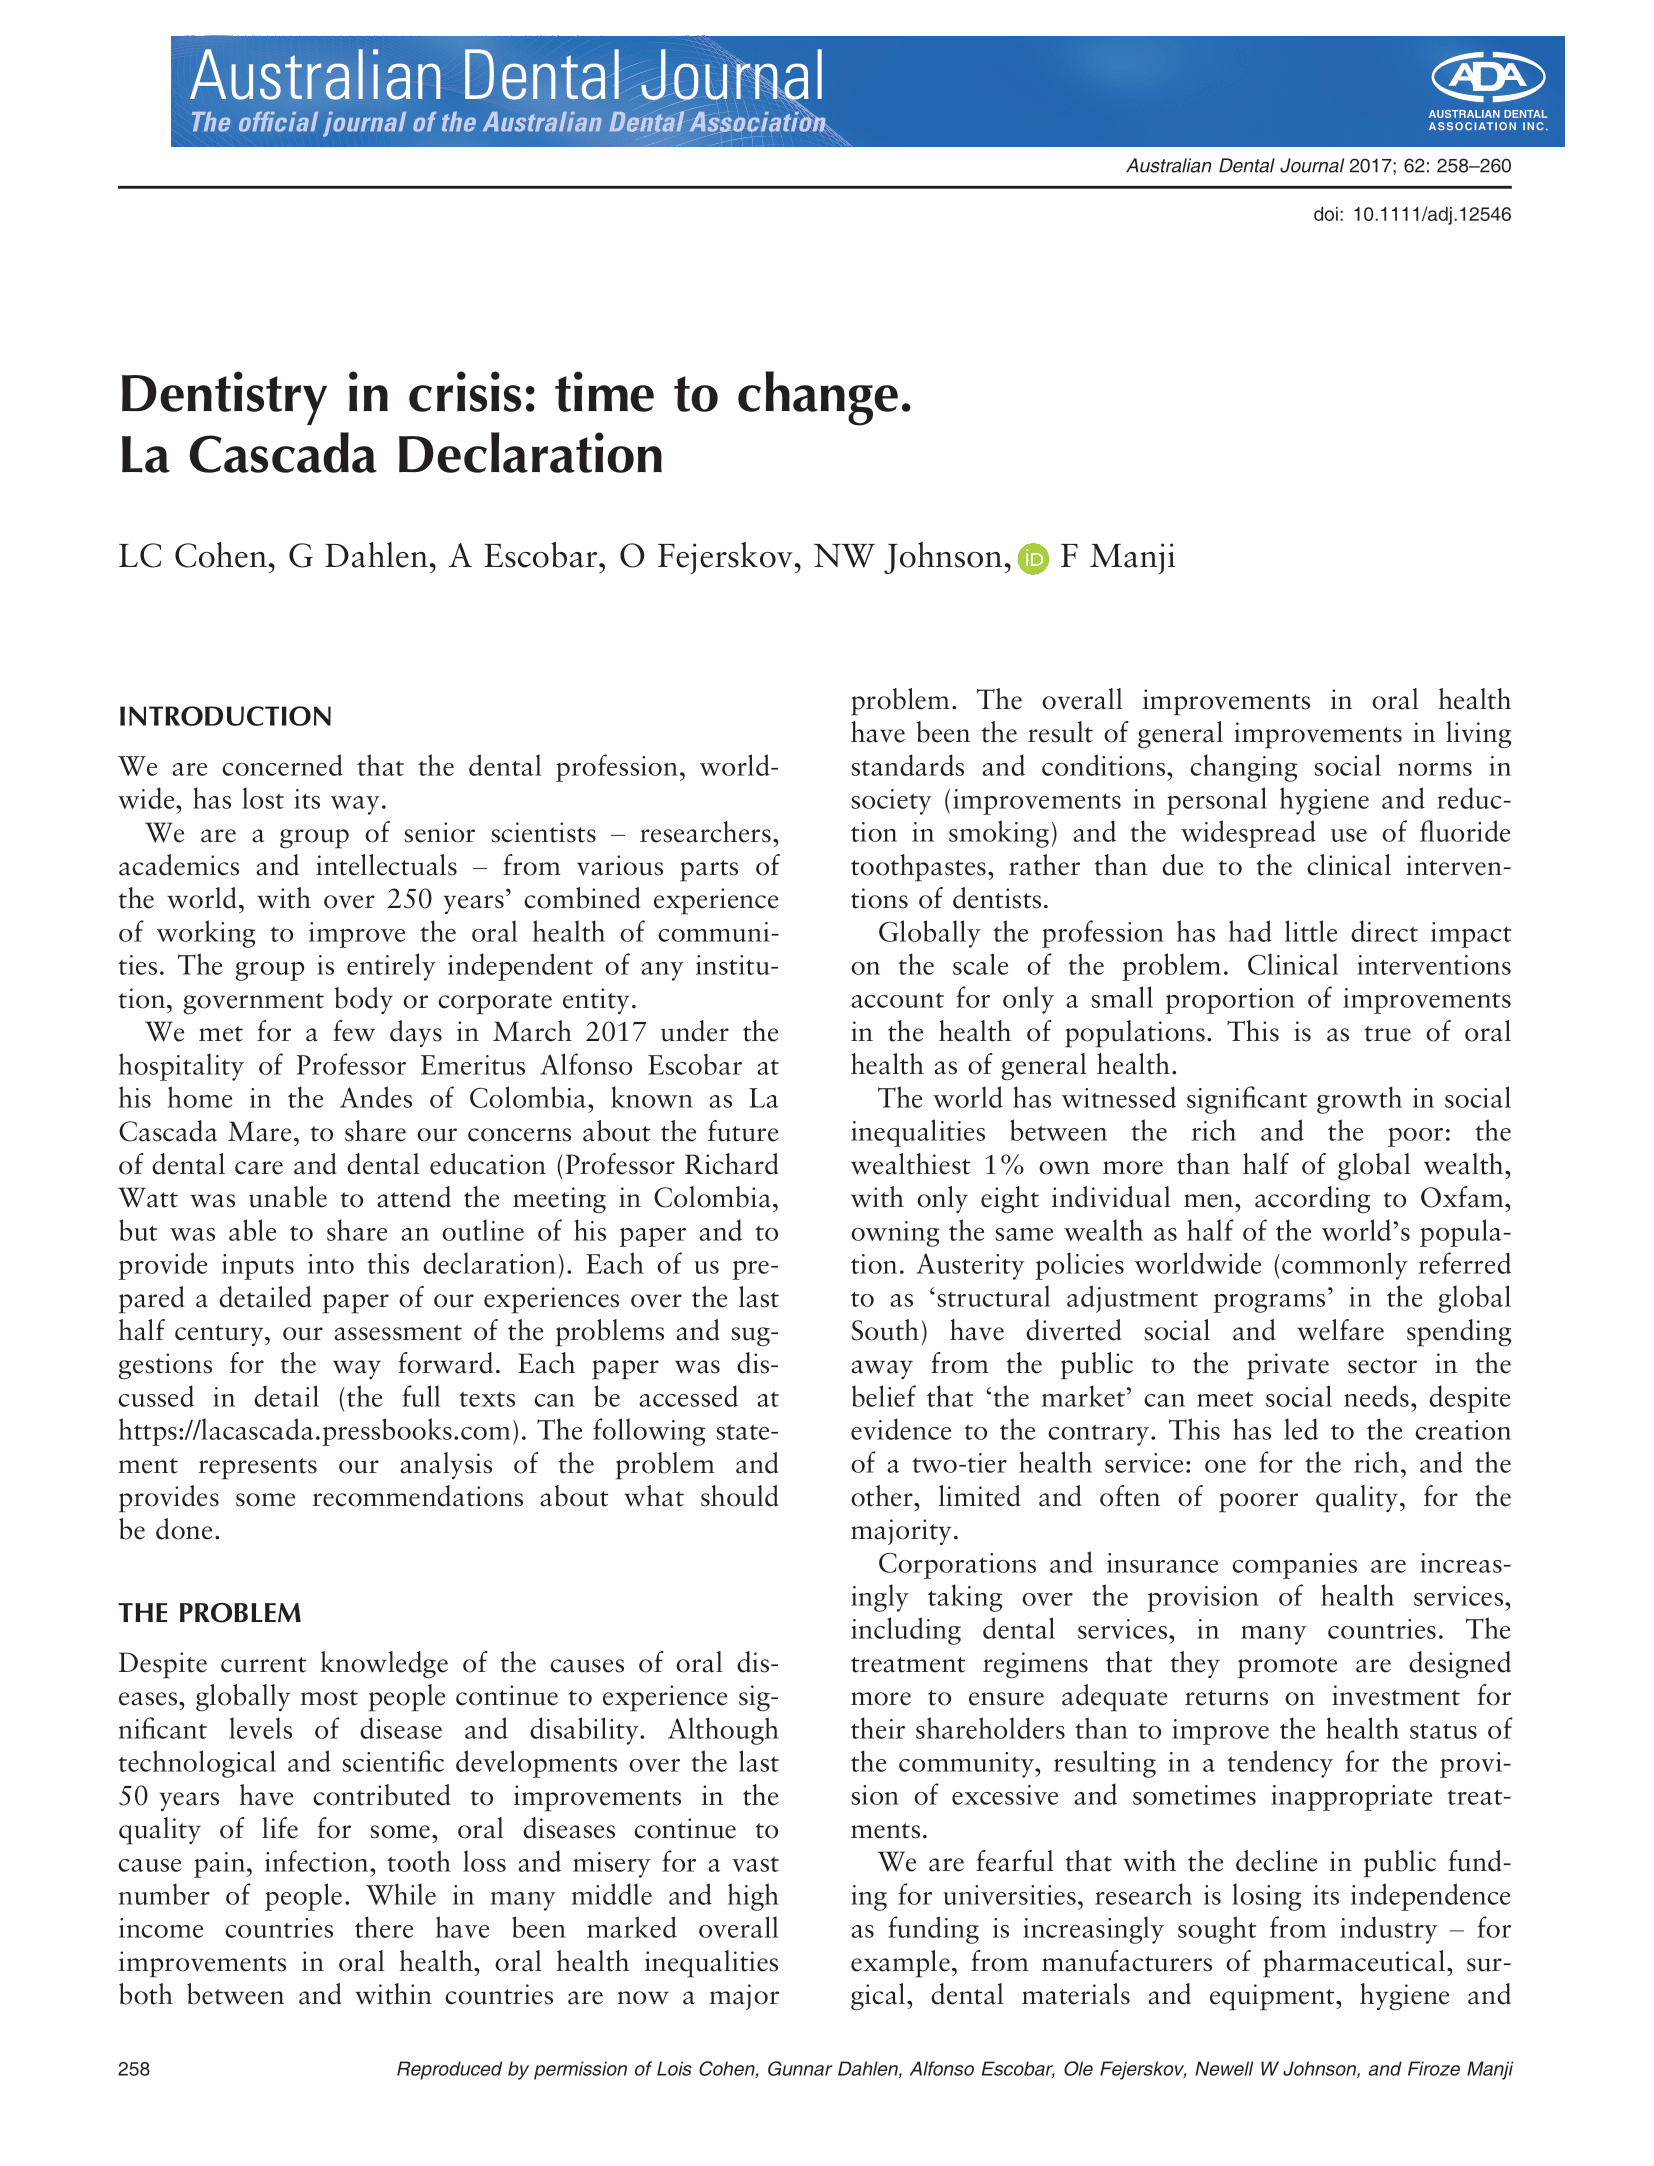 Dentistry in crisis: time to change.